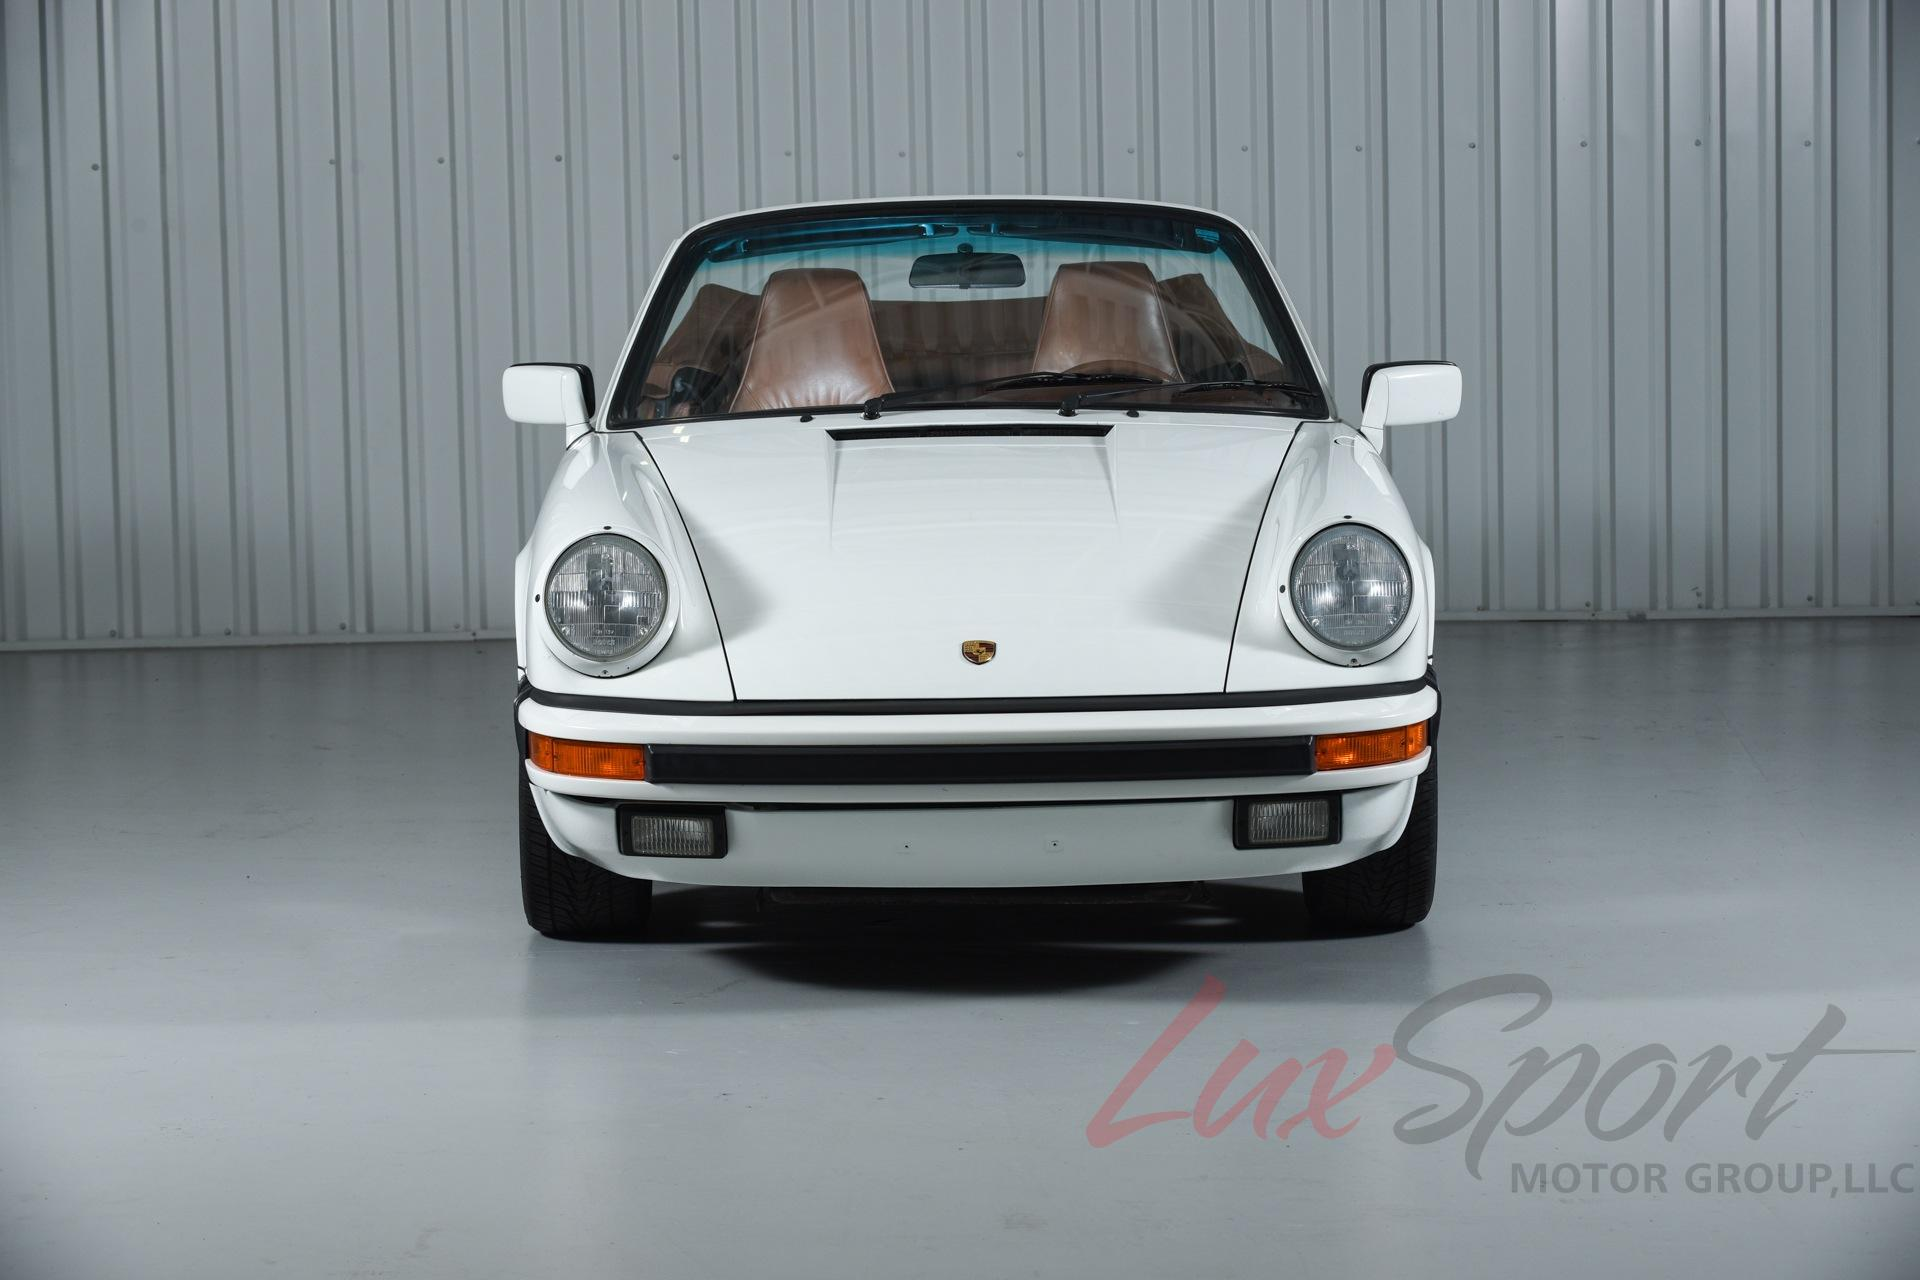 1988 porsche 911 3 2 carrera cabriolet rare grand prix white brown 5 speed mint for sale. Black Bedroom Furniture Sets. Home Design Ideas